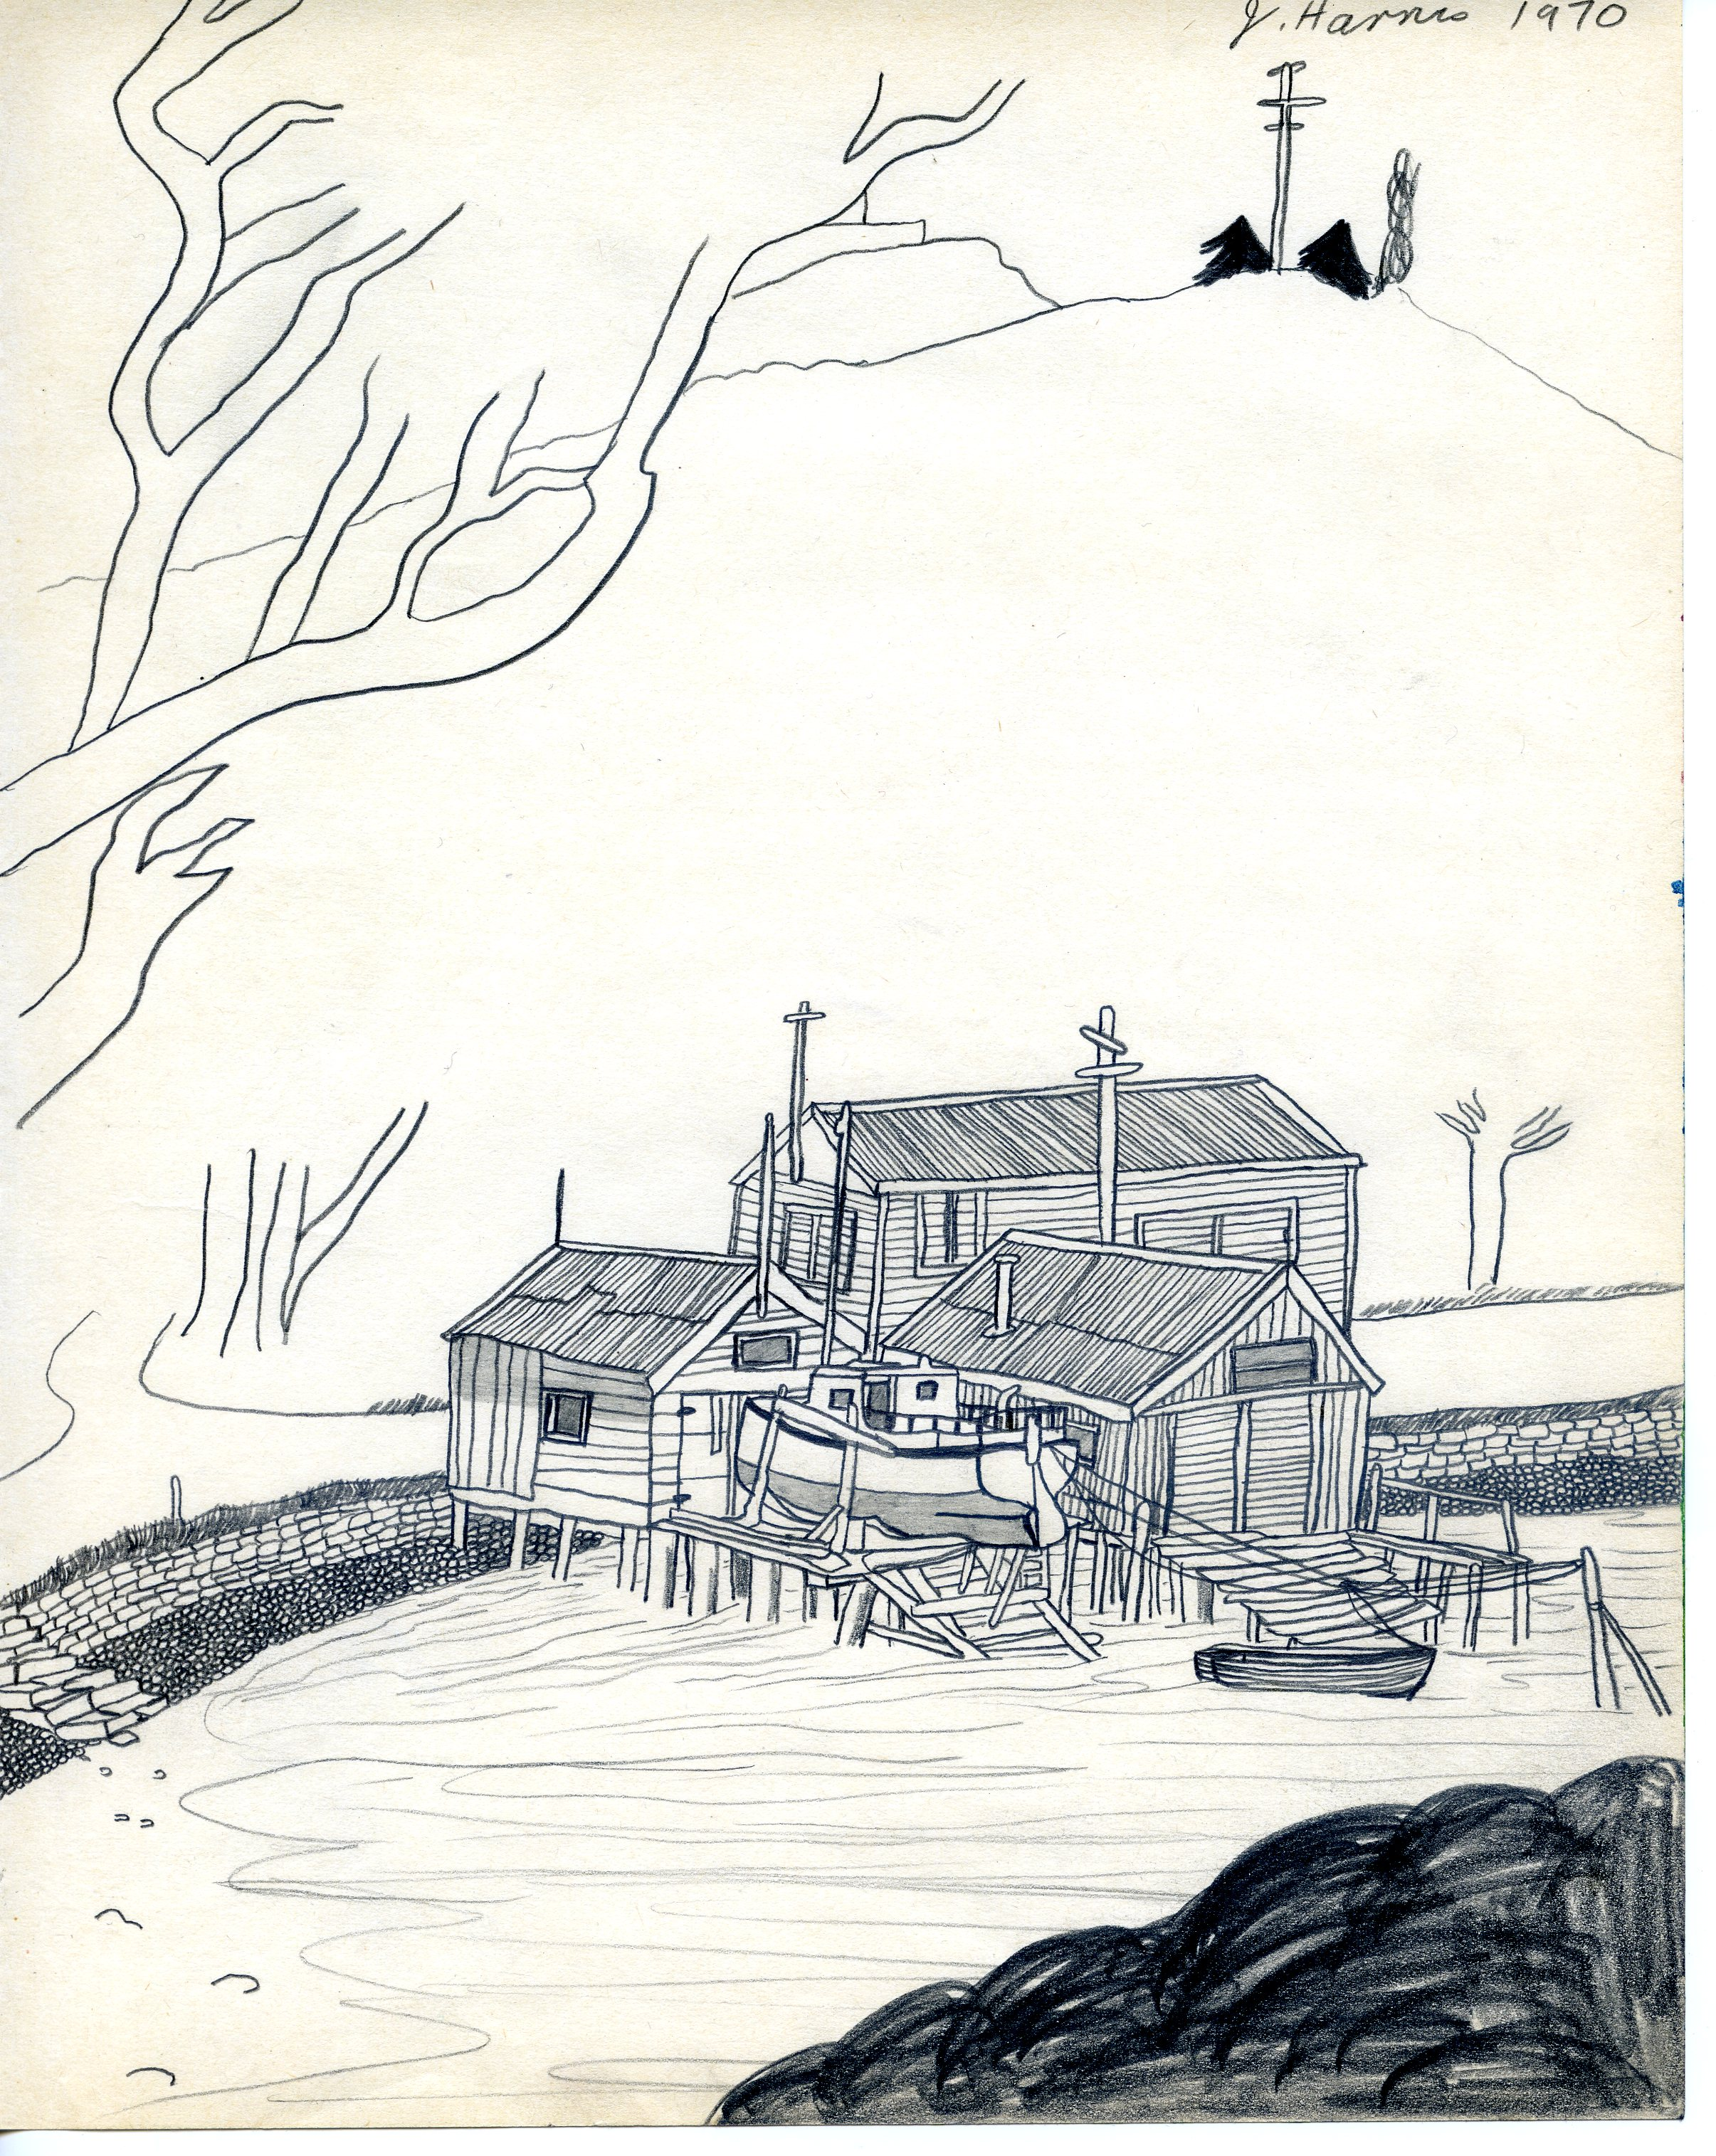 Jeffrey Harris  Port Chalmers , 1970 Pencil on paper 255 x 530 mm [Private collection]  __________